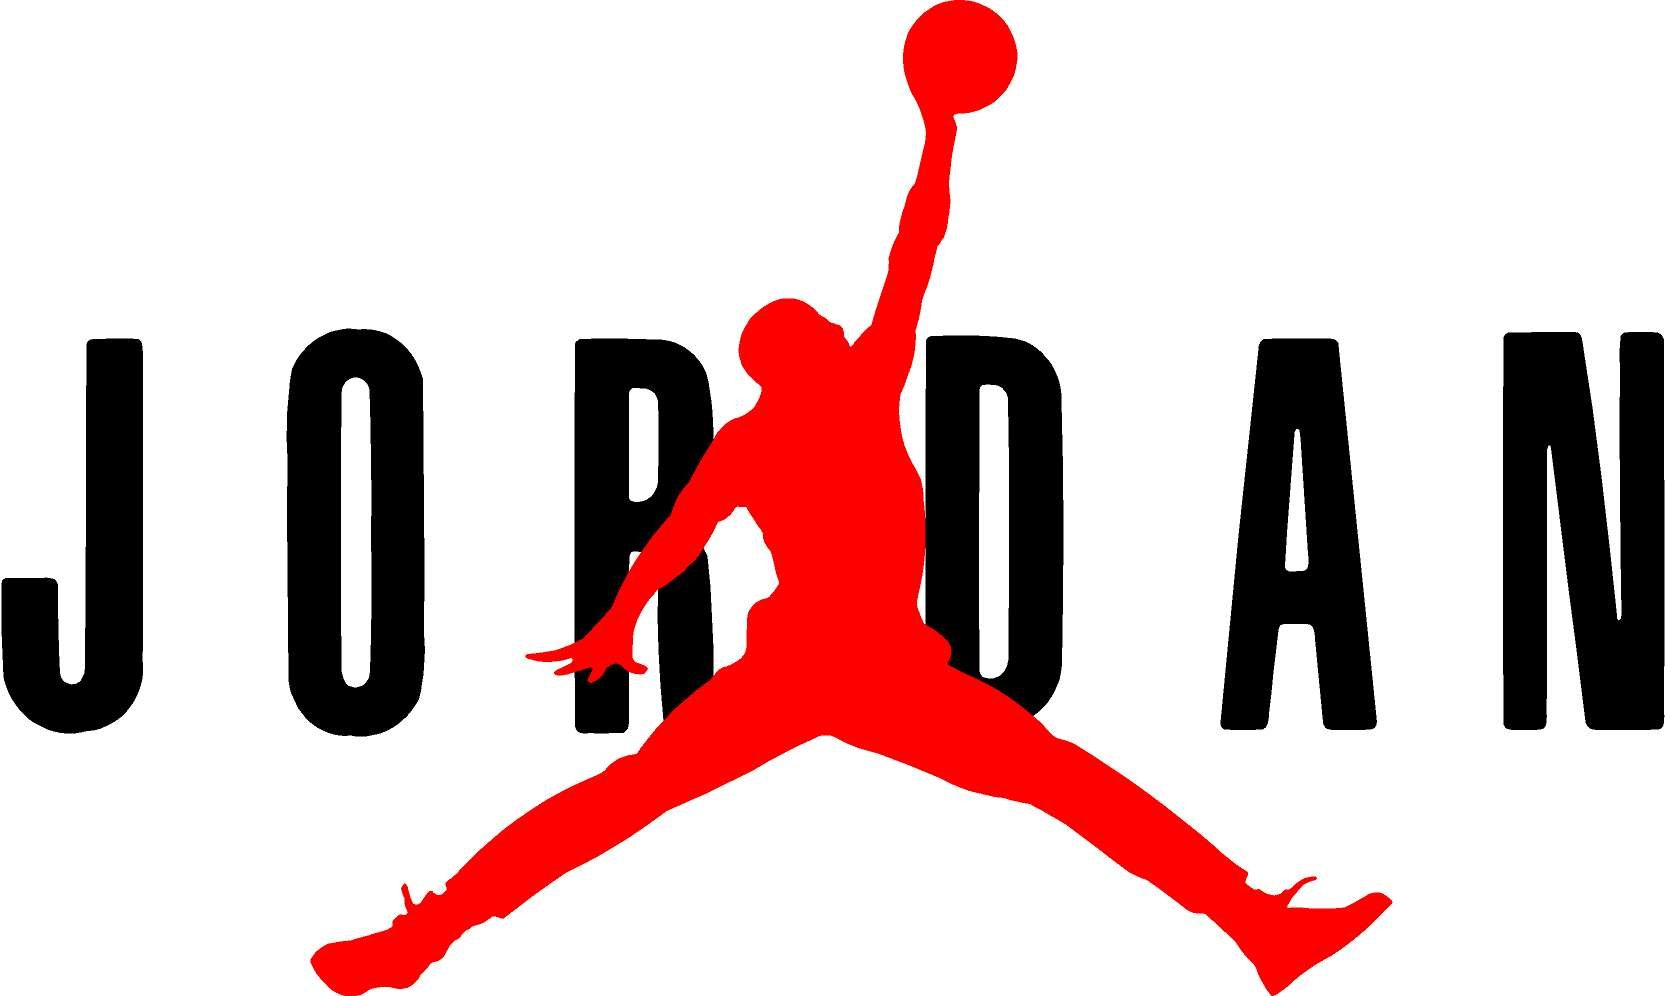 Amazon com air jordan flight 23 jumpman logo nba huge vinyl decal sticker for wall car room windows 23 inches black arts crafts sewing